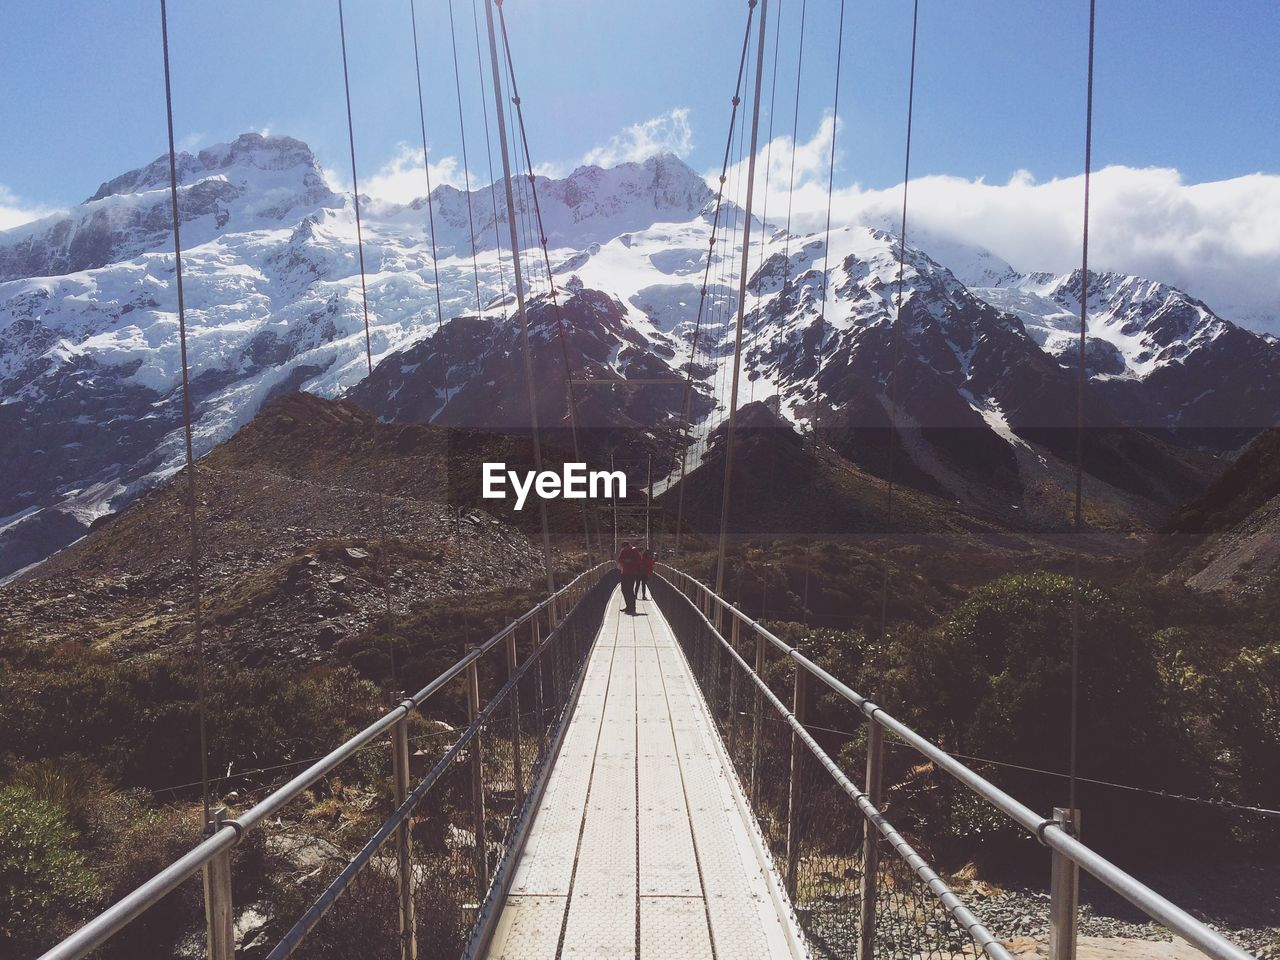 mountain, transportation, nature, connection, architecture, the way forward, built structure, direction, sky, day, bridge, railing, diminishing perspective, scenics - nature, winter, mountain range, snow, bridge - man made structure, cable, footbridge, no people, outdoors, snowcapped mountain